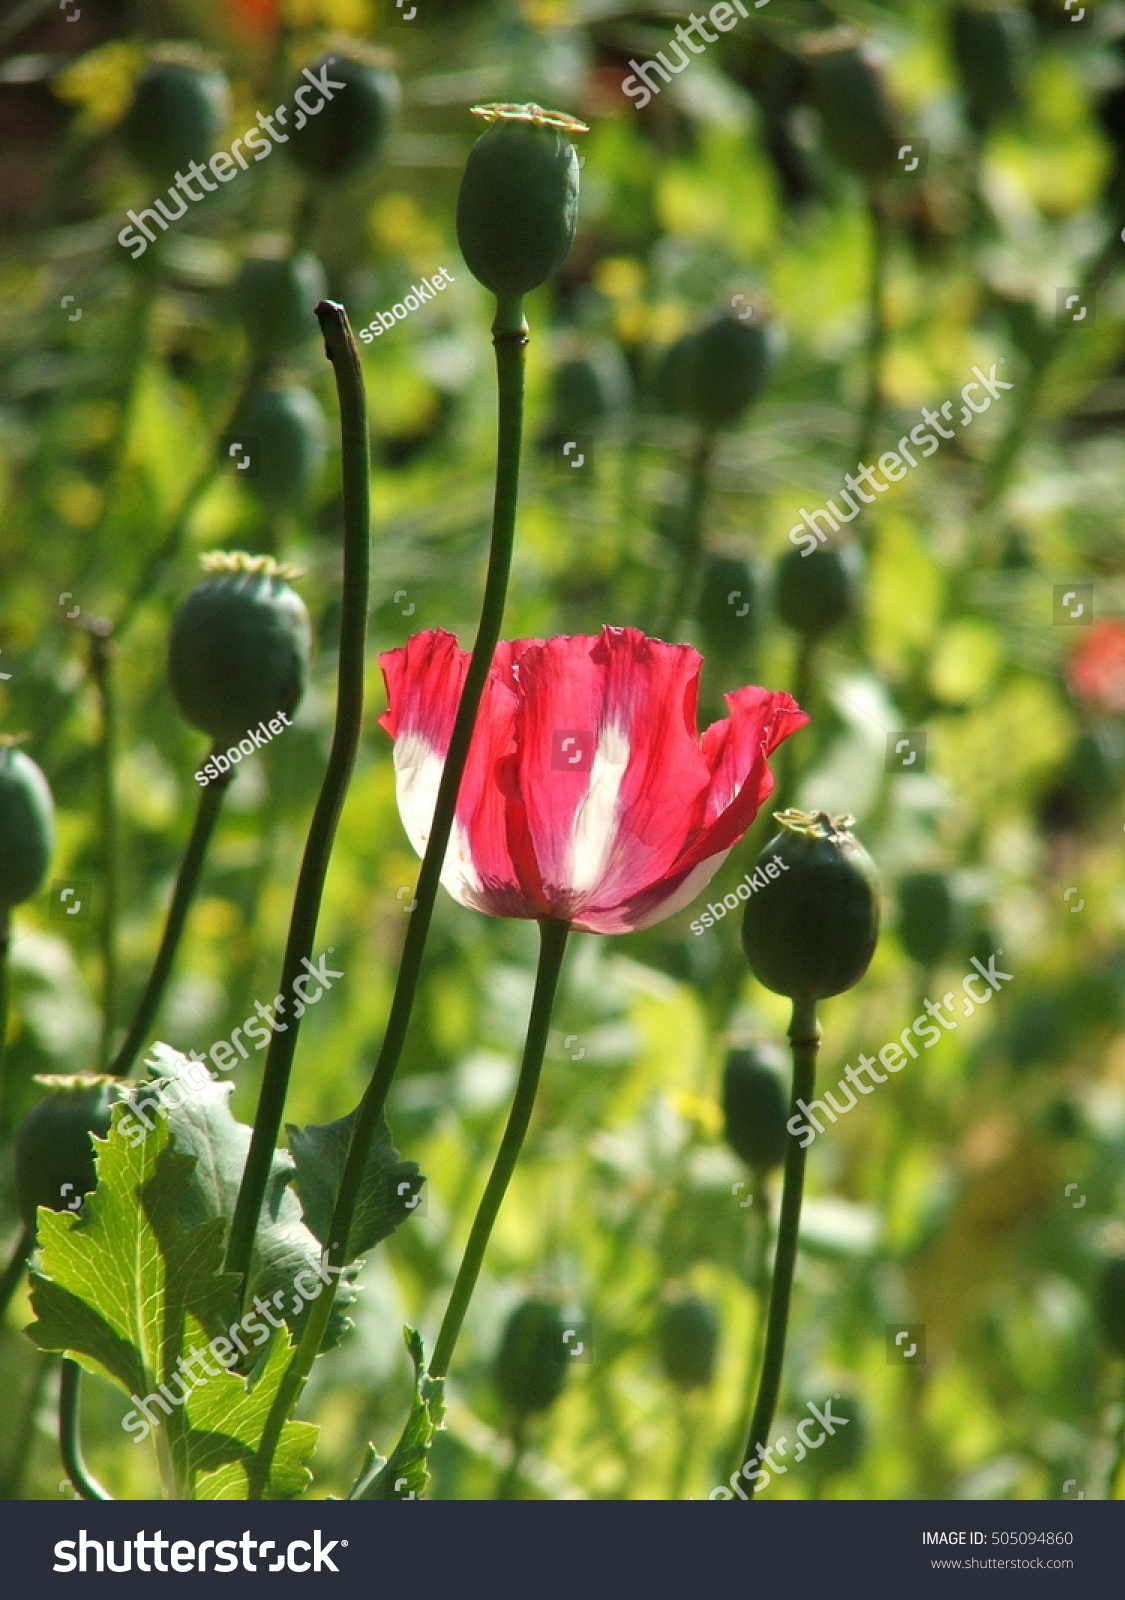 Close flowers opium plants drugs illegal stock photo edit now close up flowers opium plants drugs and illegal beautiful but harmful to the body izmirmasajfo